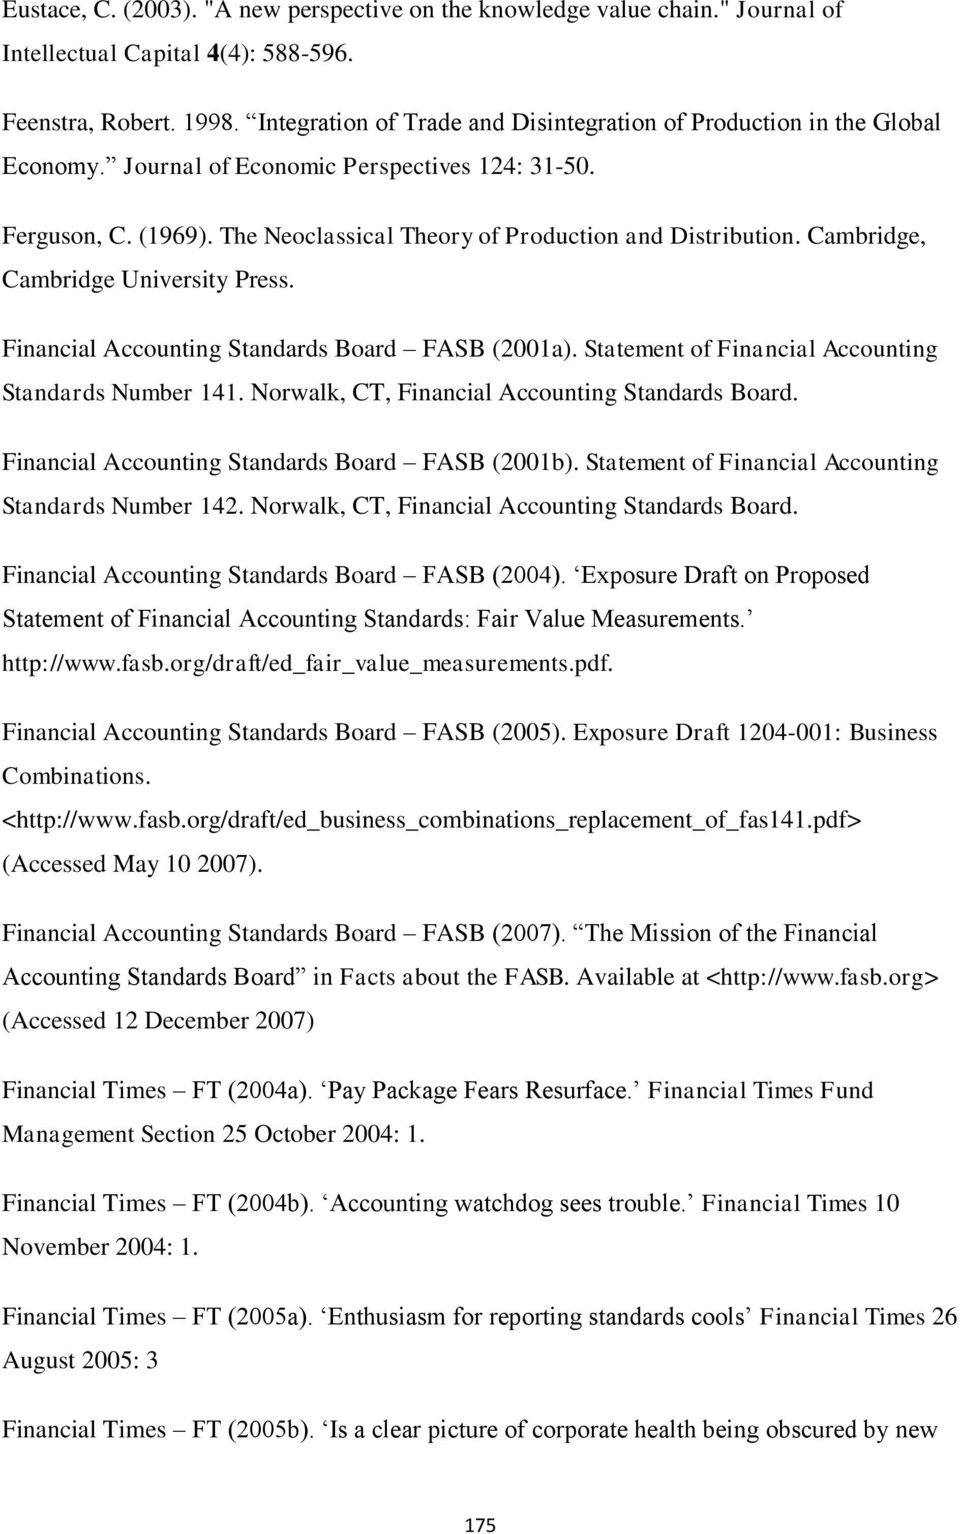 Cambridge, Cambridge University Press. Financial Accounting Standards Board FASB (2001a). Statement of Financial Accounting Standards Number 141. Norwalk, CT, Financial Accounting Standards Board.